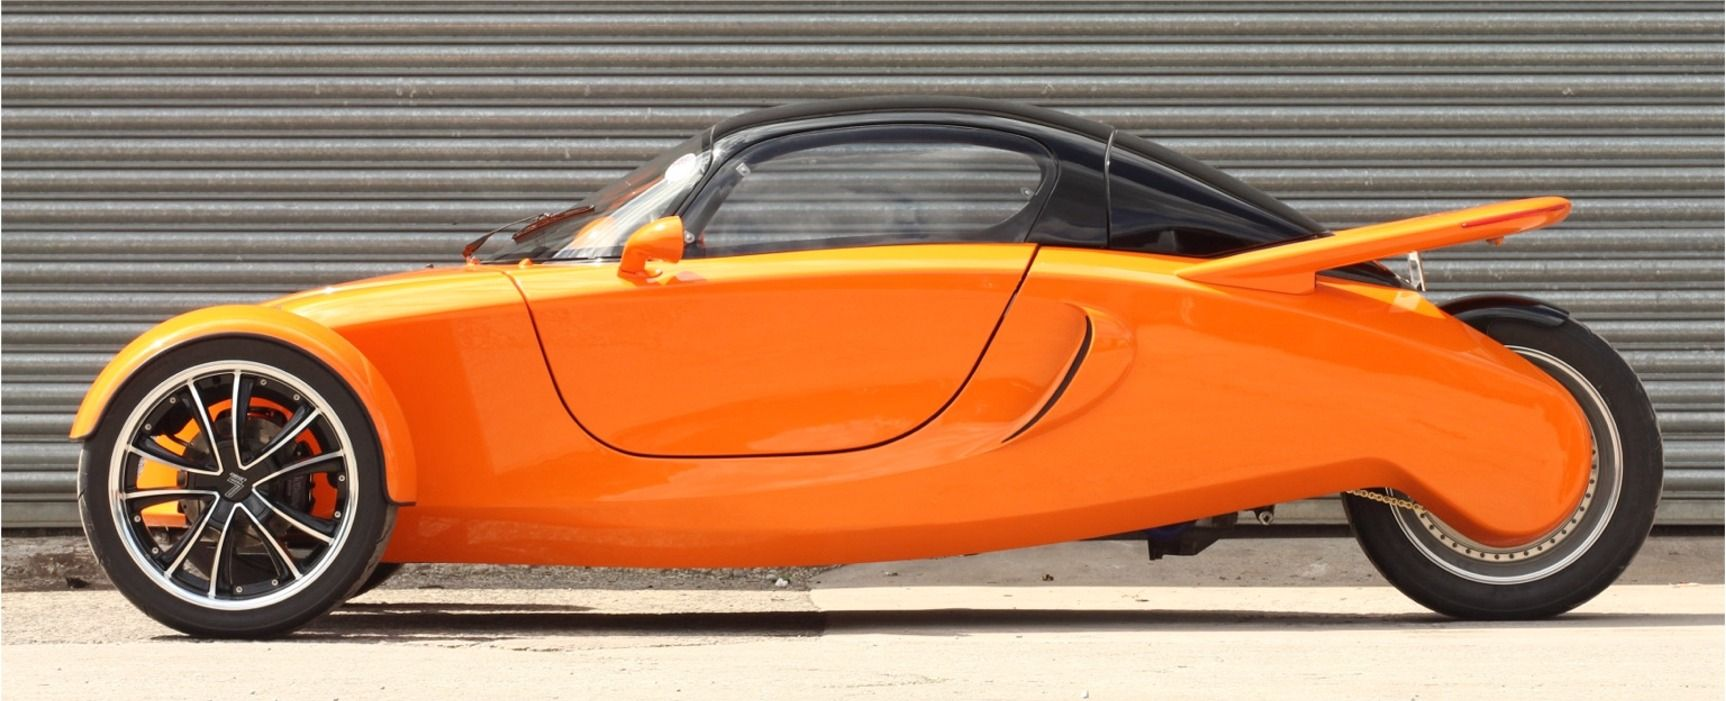 Razor Kit Car (With images) Reverse trike, Electric